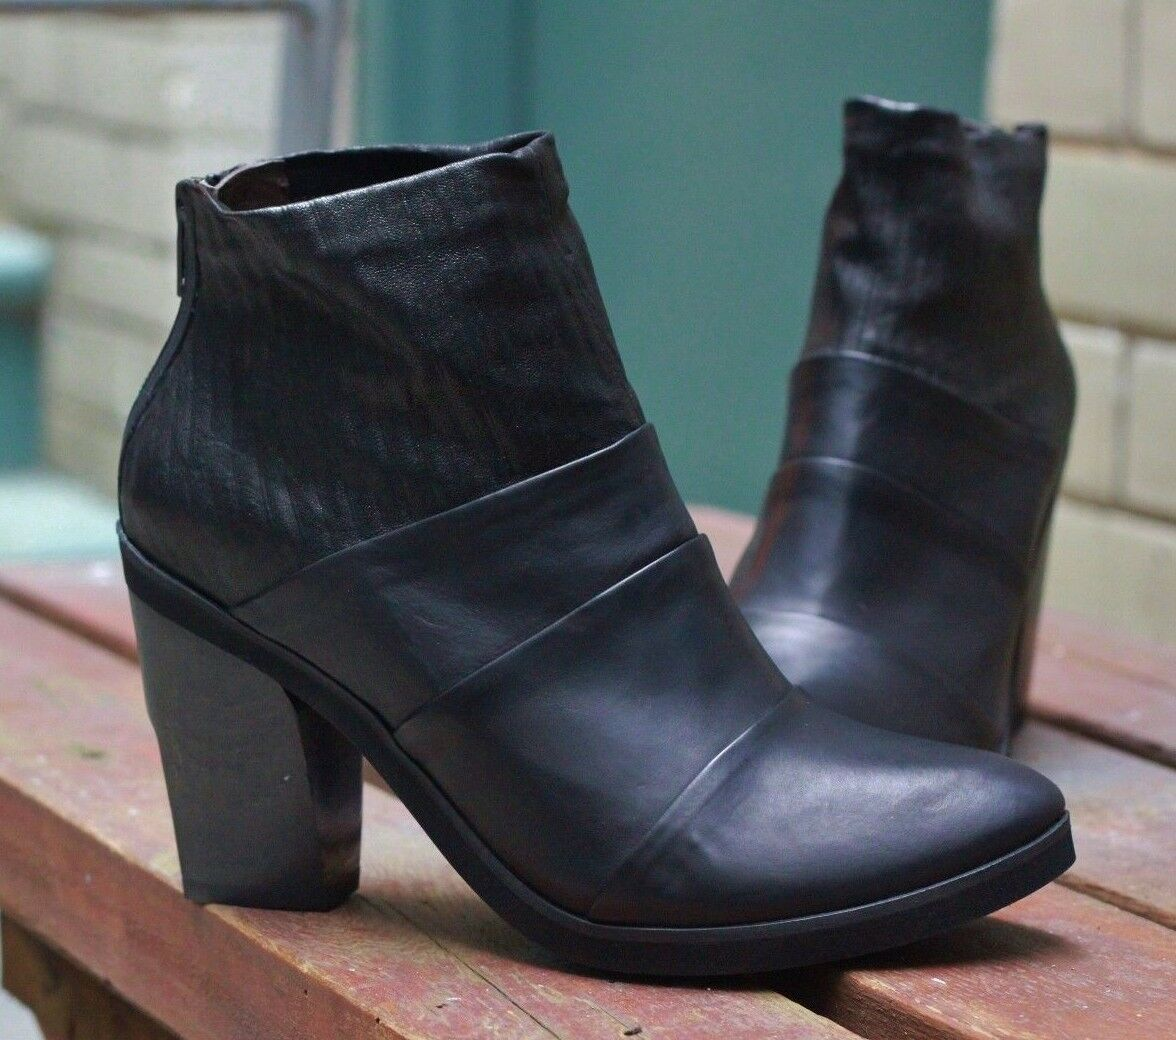 COCLICO SHOES MELINA BOOTIES BLACK BLACK BLACK LEATHER ANKLE BOOTS BACK ZIP  425 40 9 NEW 80cfb8